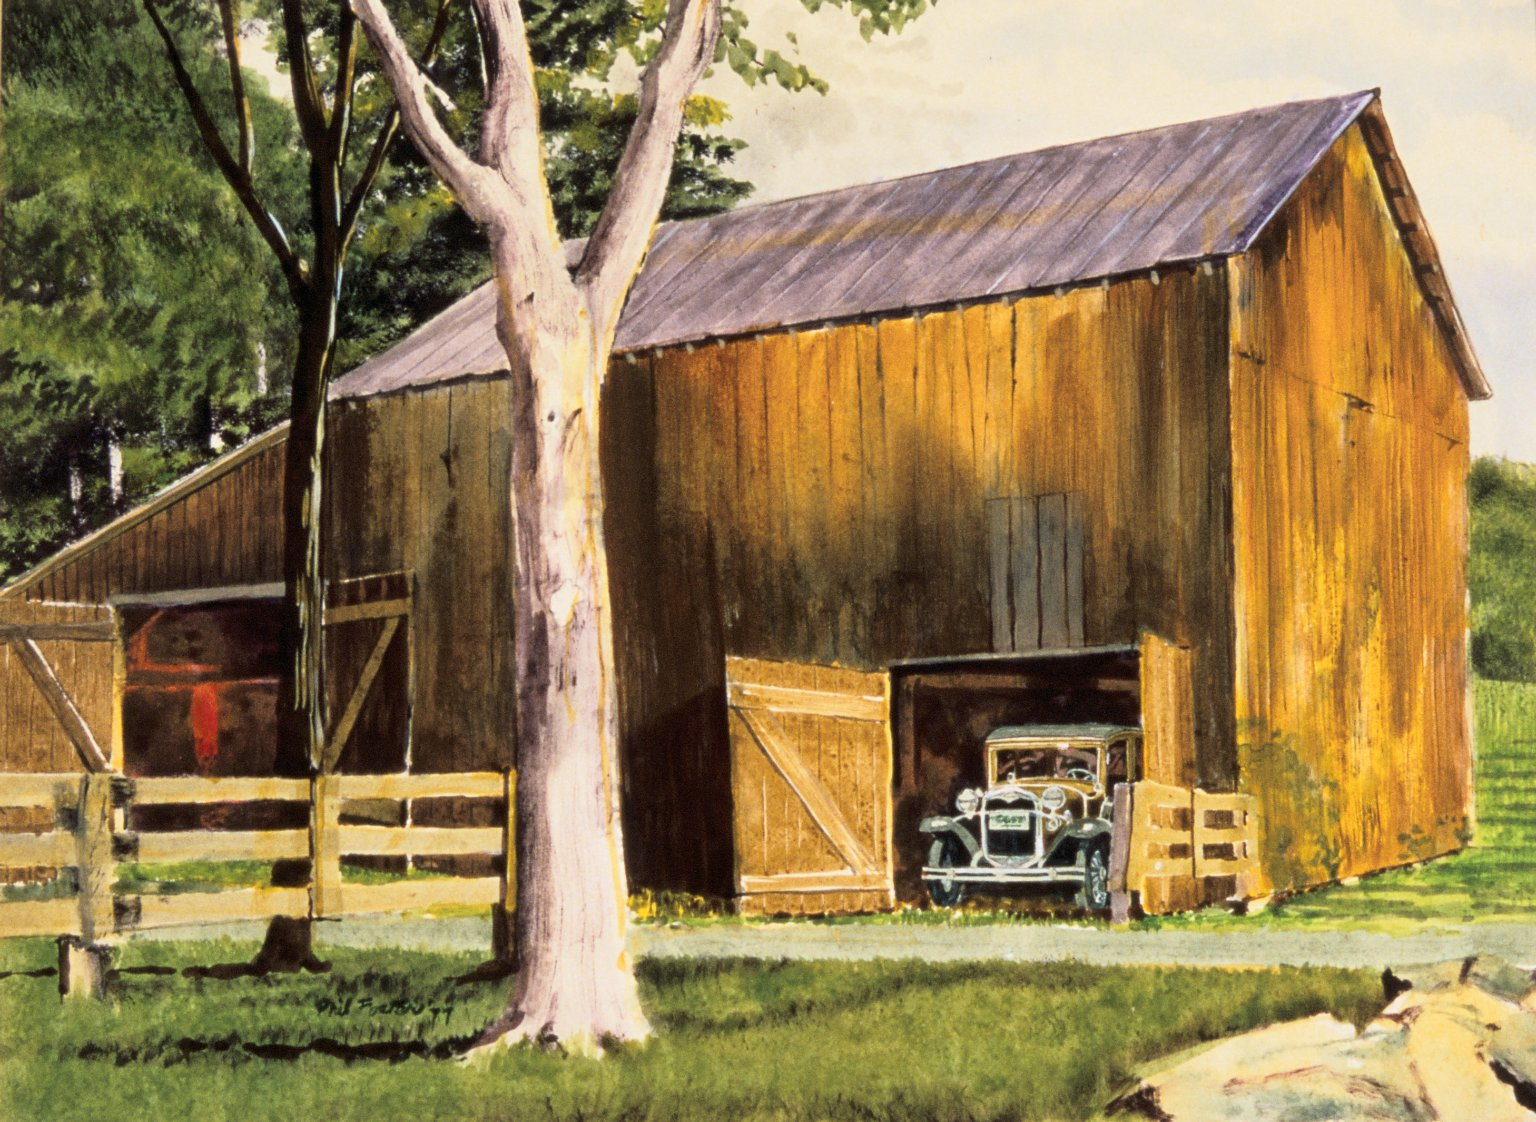 Barn with Antique Car